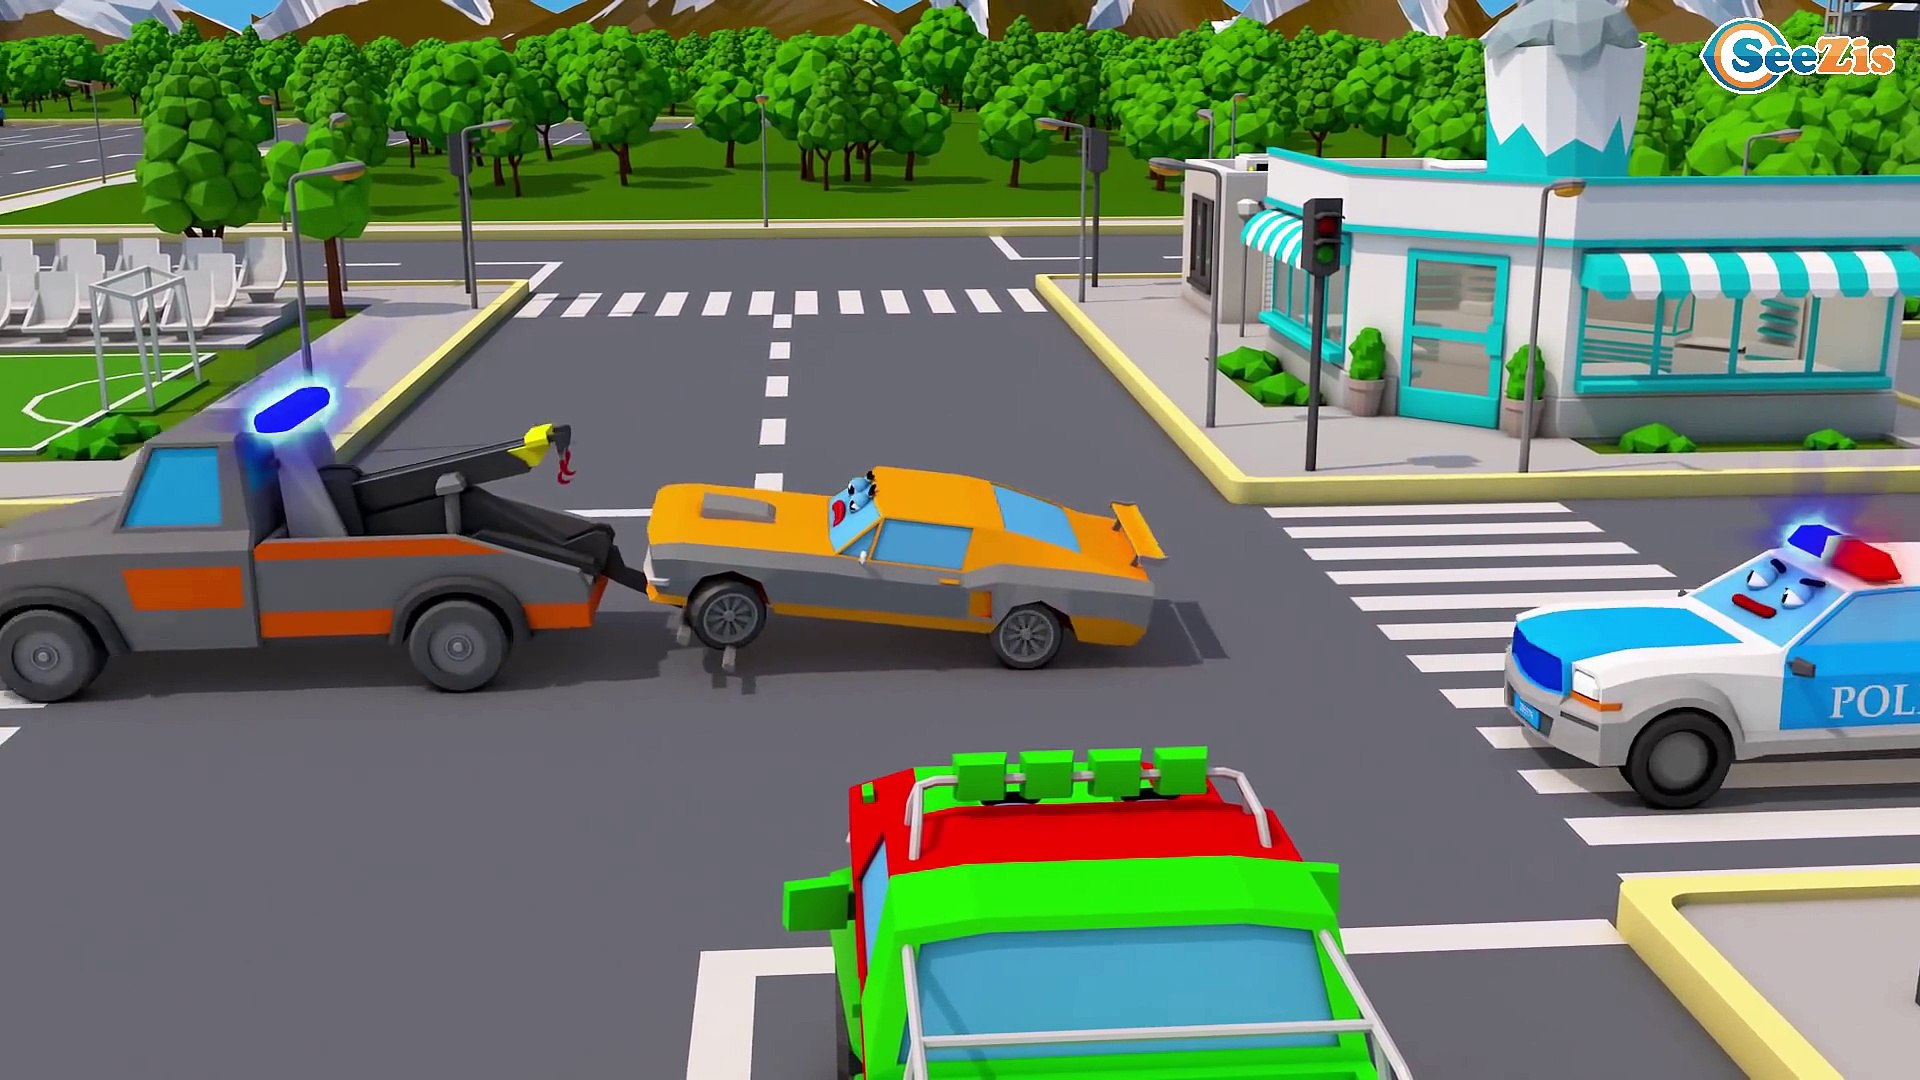 Police car Ambulance & Little Racing Cars In Car Cartoon for Baby 3D Animation Cars & Truck